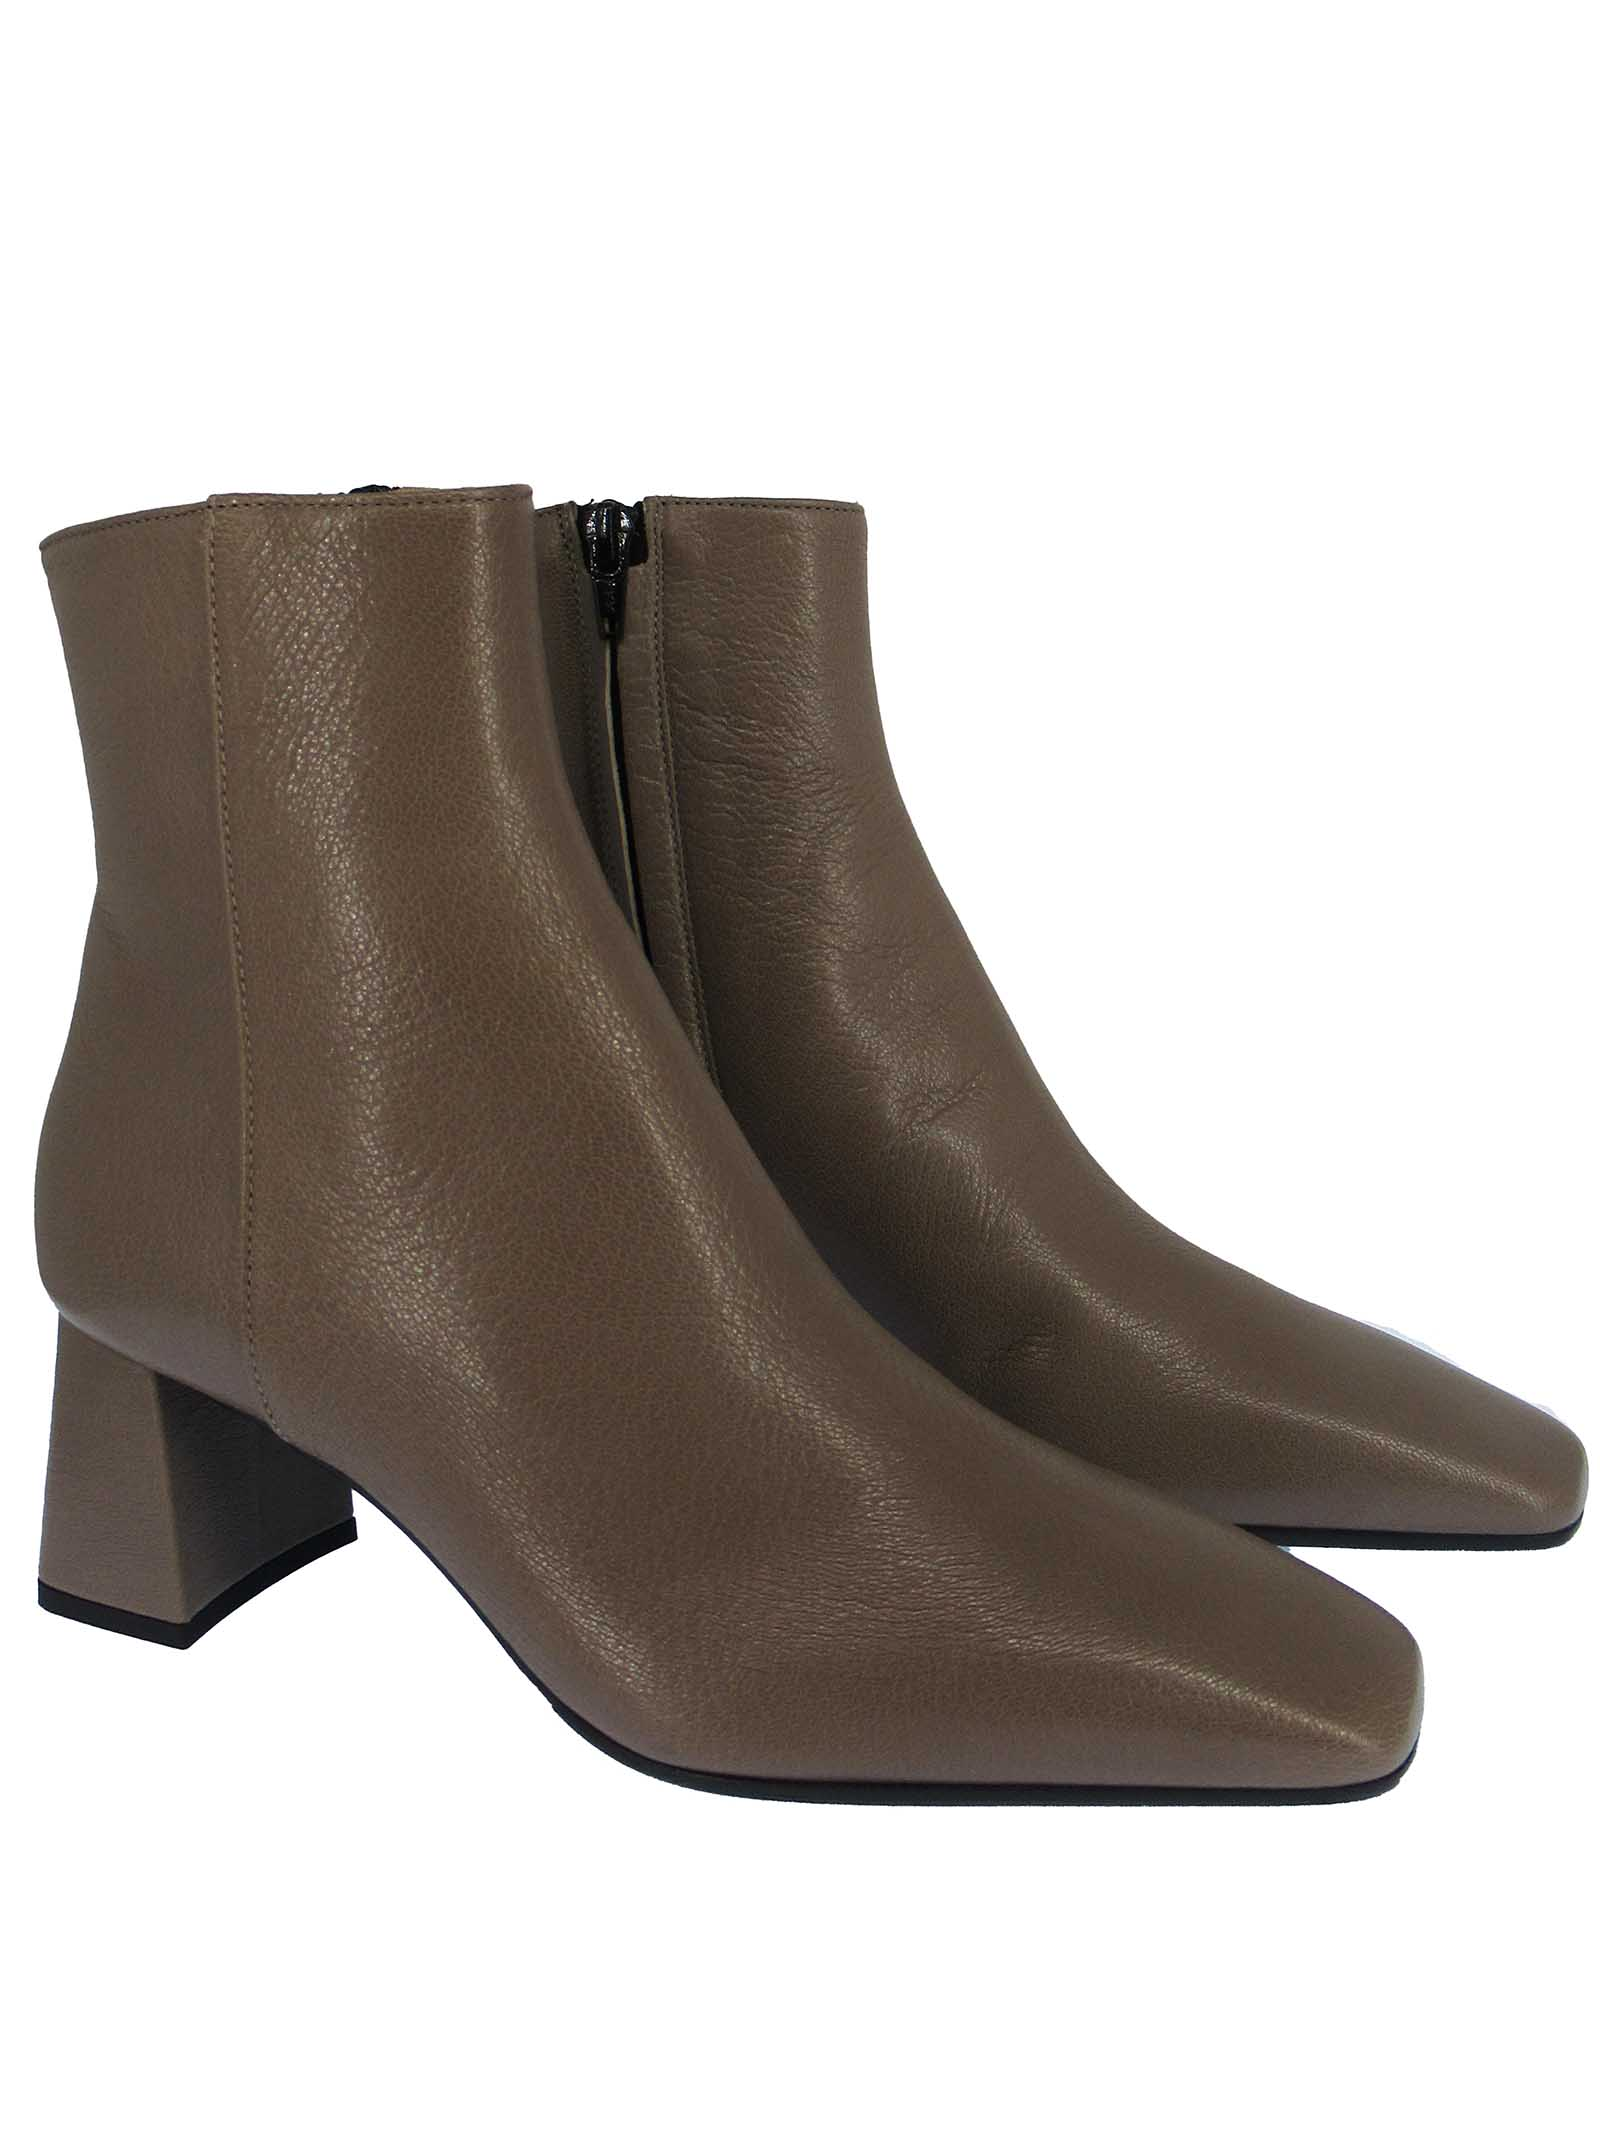 Women's Shoes Ankle Boots in Taupe Leather with Square Toe Side Zip and Medium Heel Fabio Rusconi | Ankle Boots | I-2099015